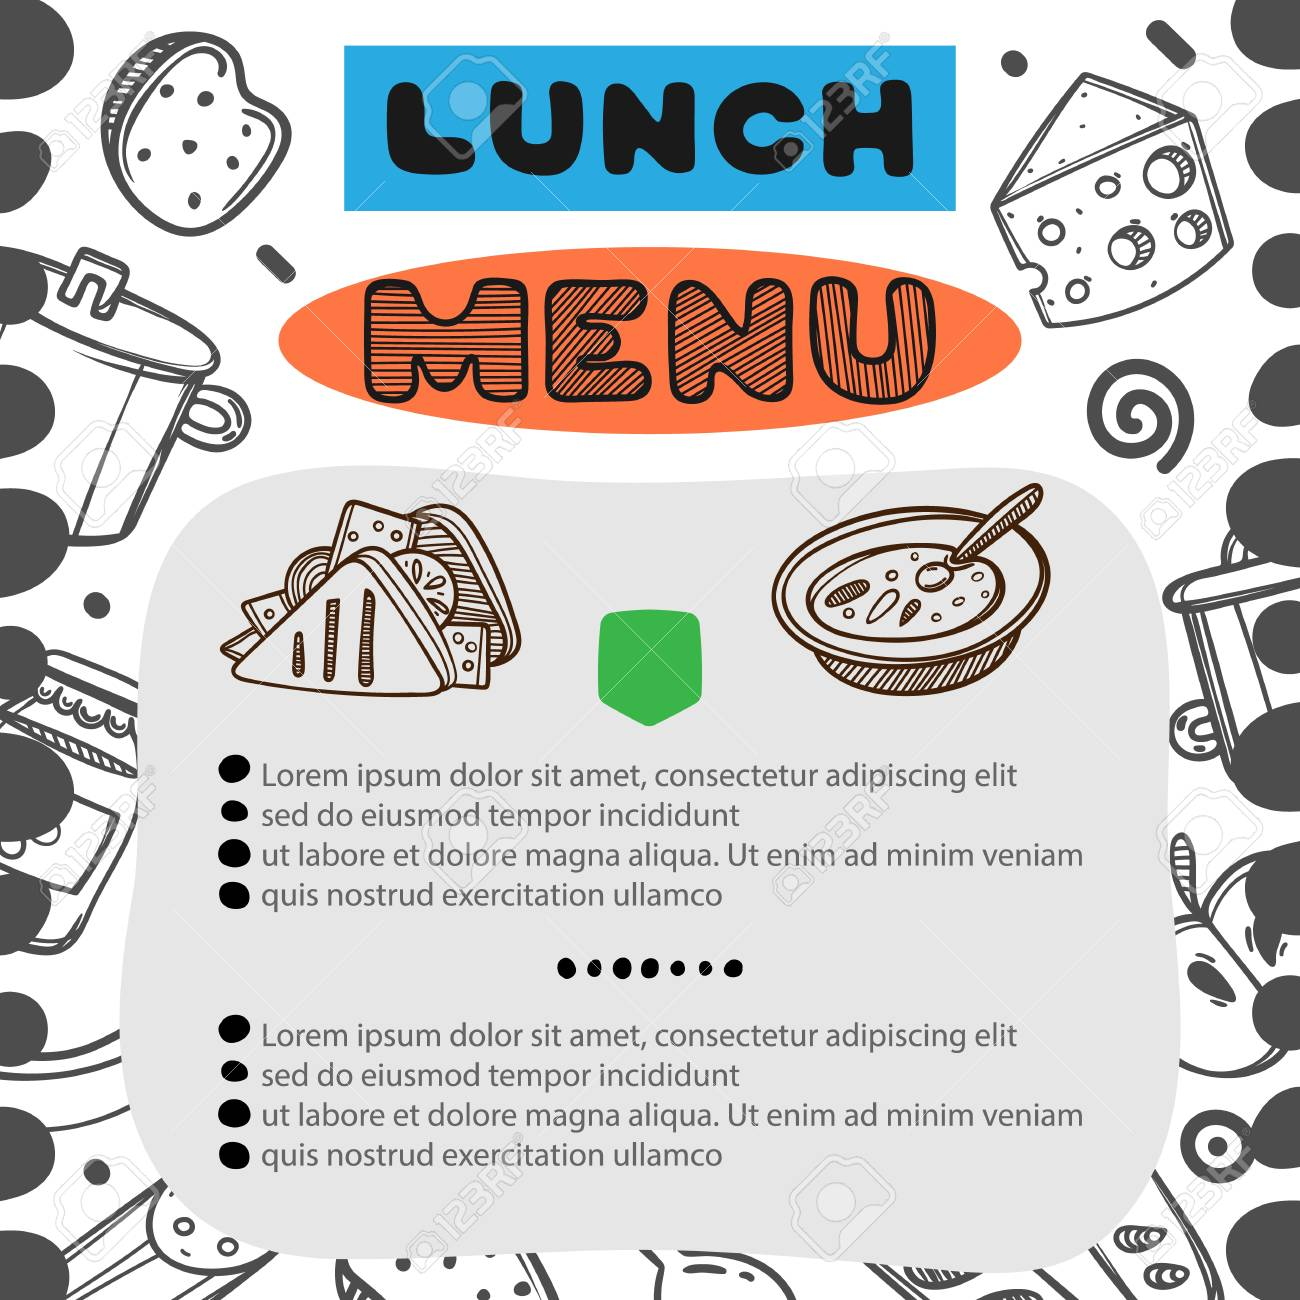 Lunch Menu Template | Hand Drawn Menu For Cafe With Lunch Menu Template Design Food